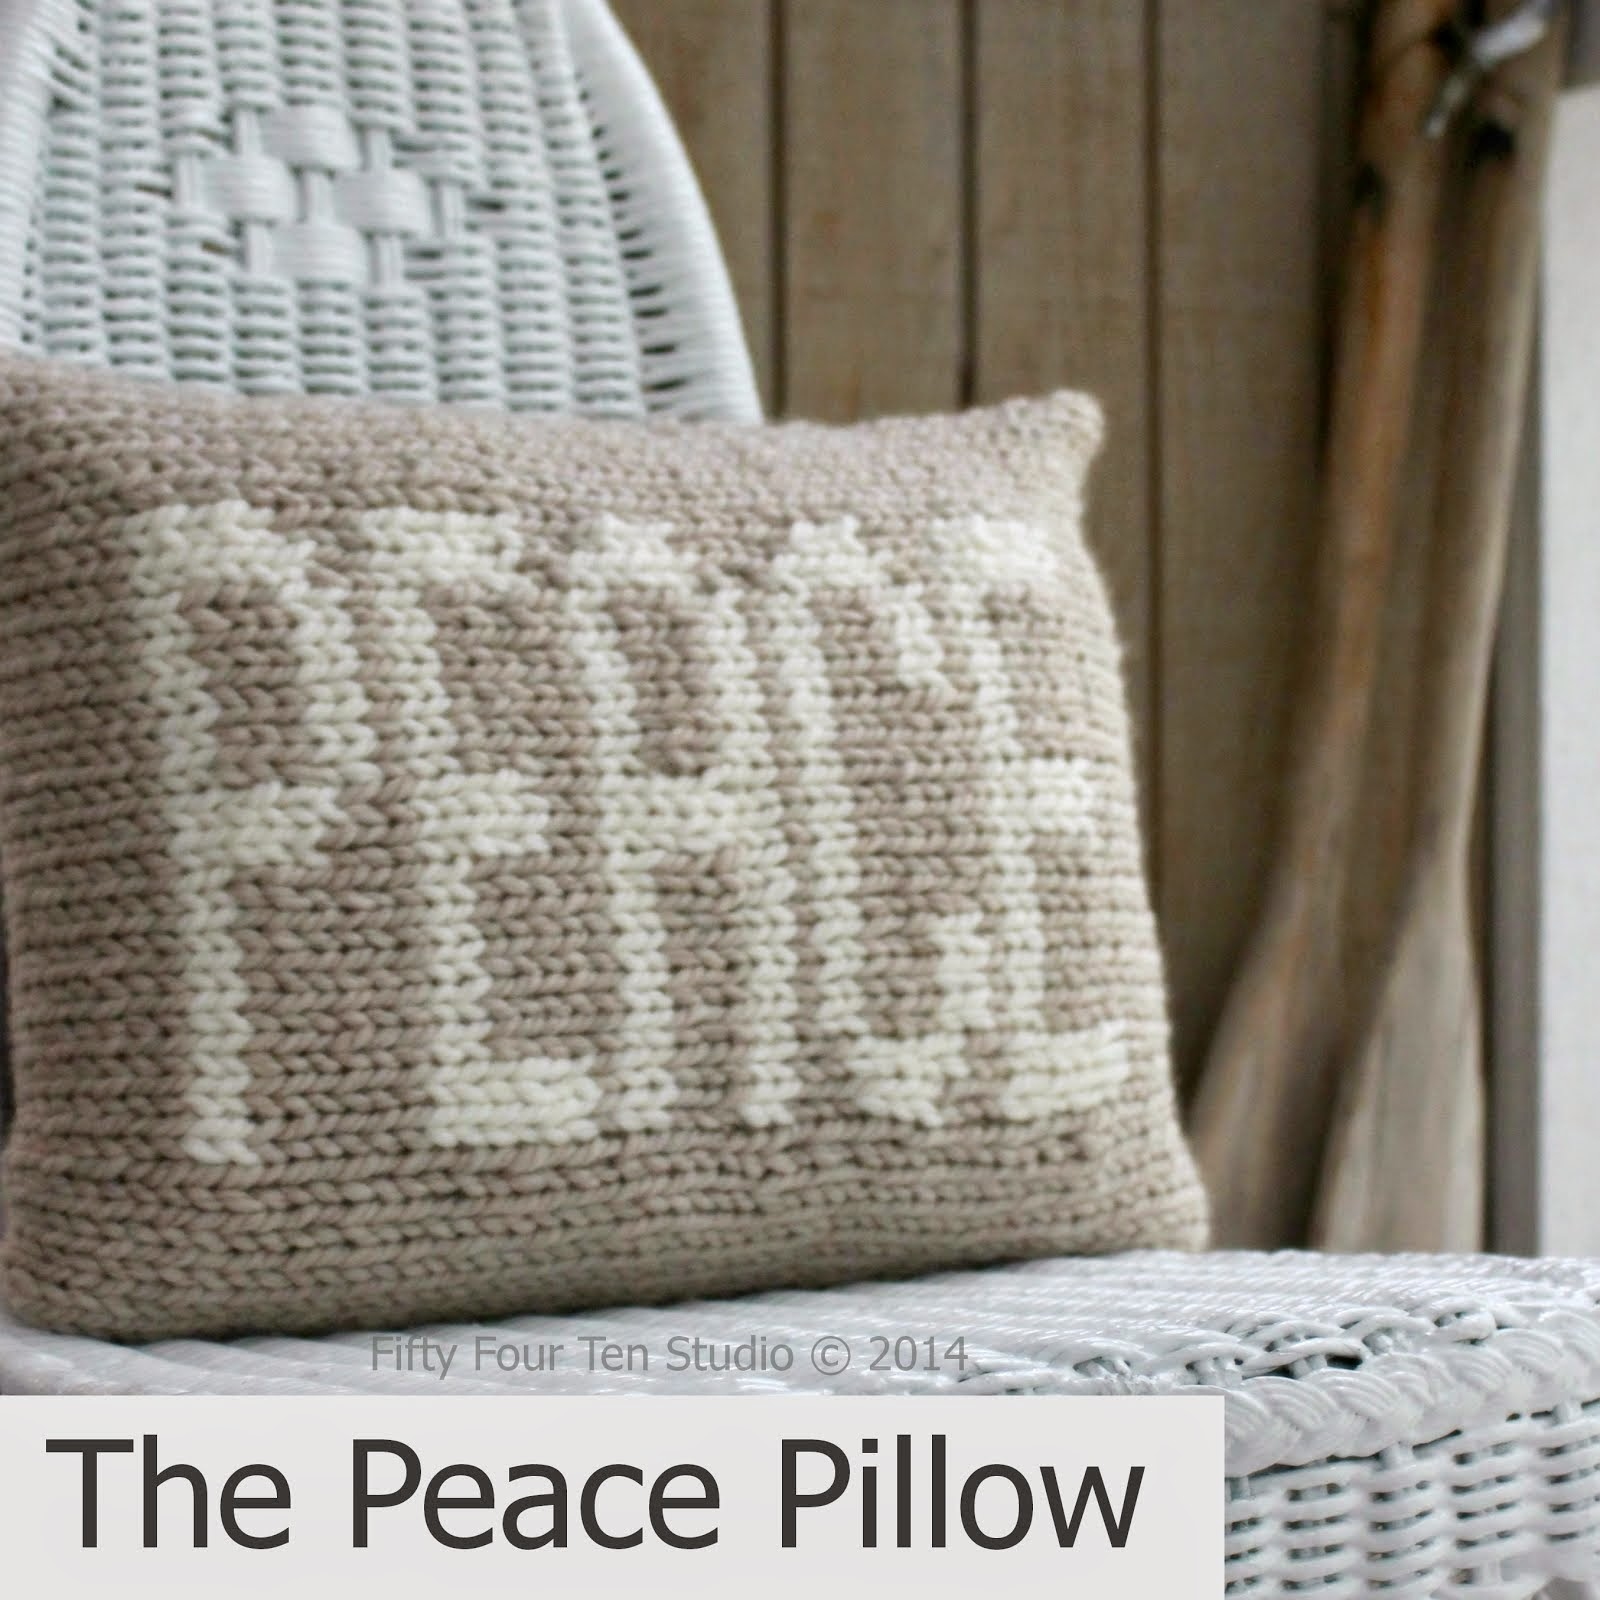 The Peace Pillow